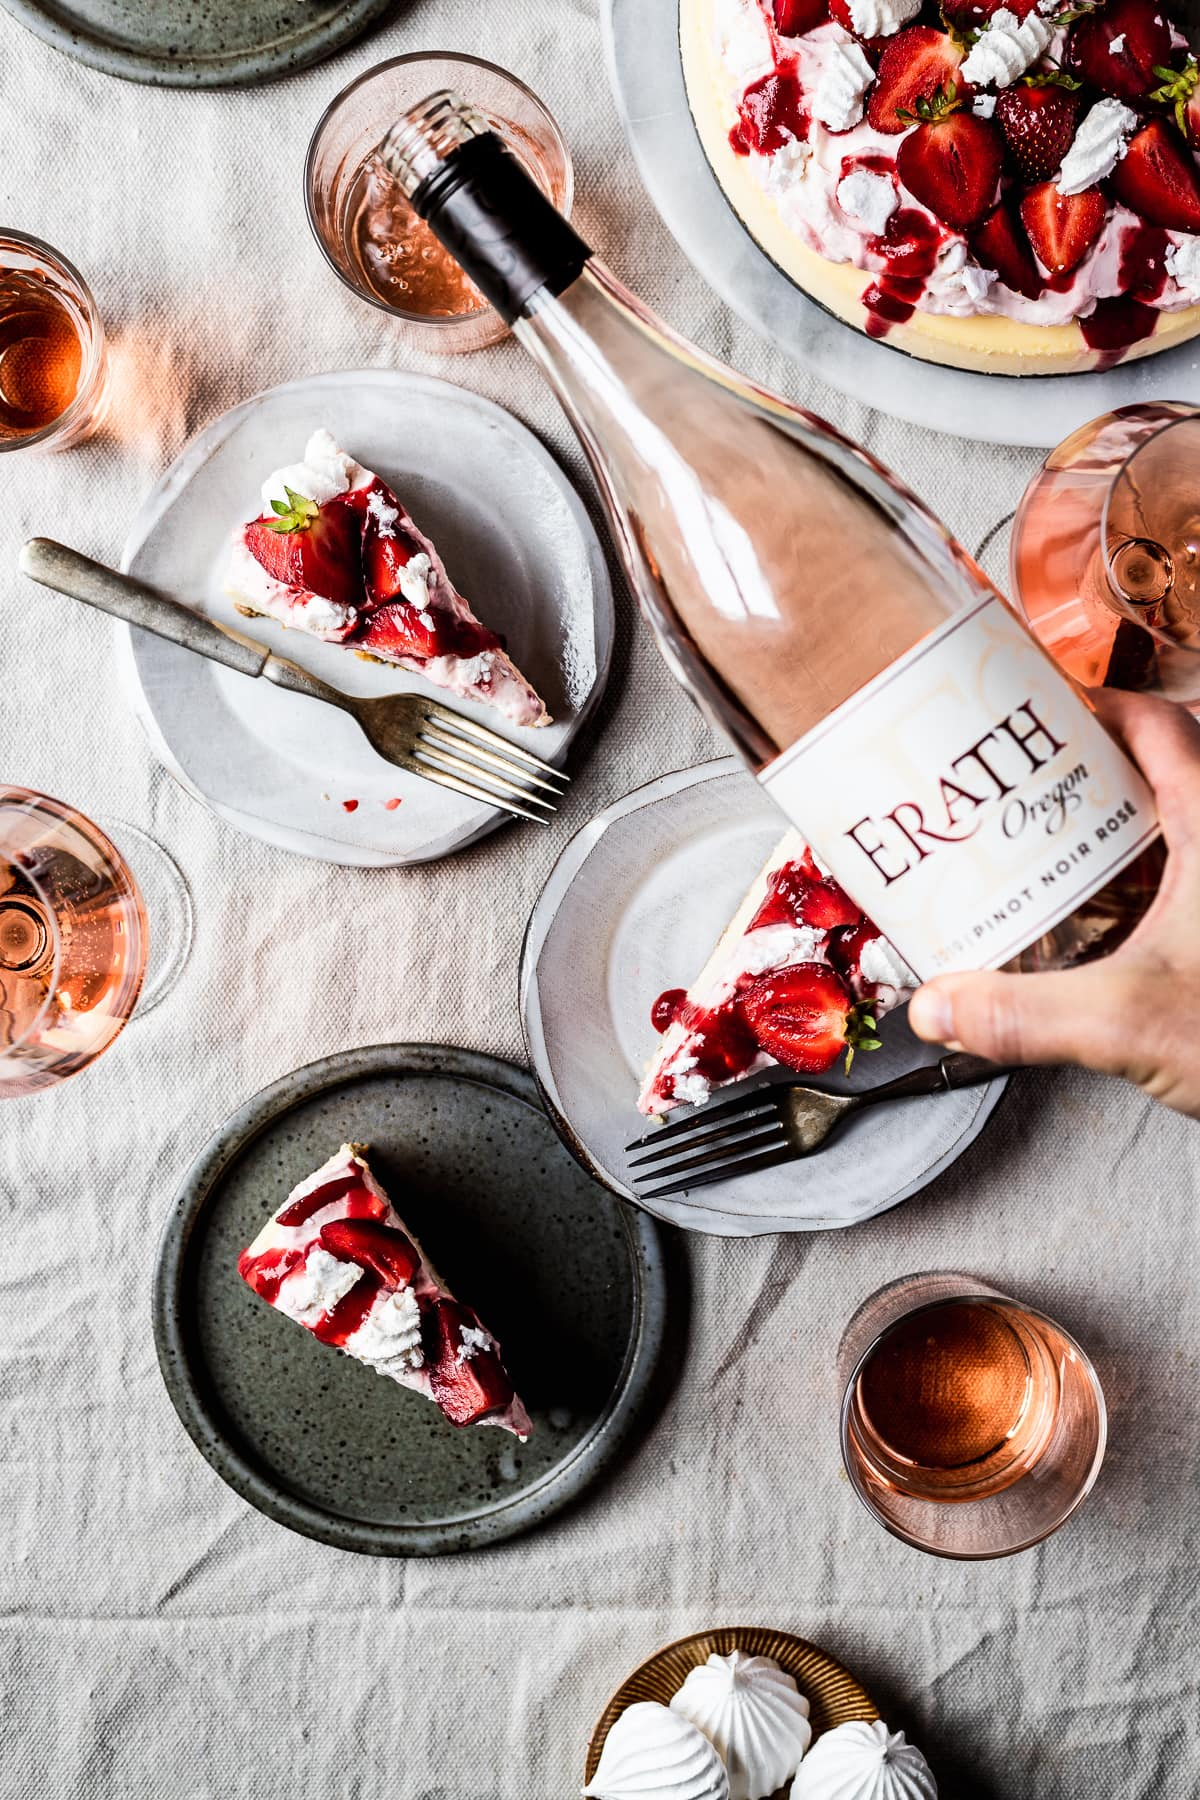 A summery picnic scene with slices of strawberry eton mess cheesecake on plates. A hand pours a bottle of rosé wine into a glass.